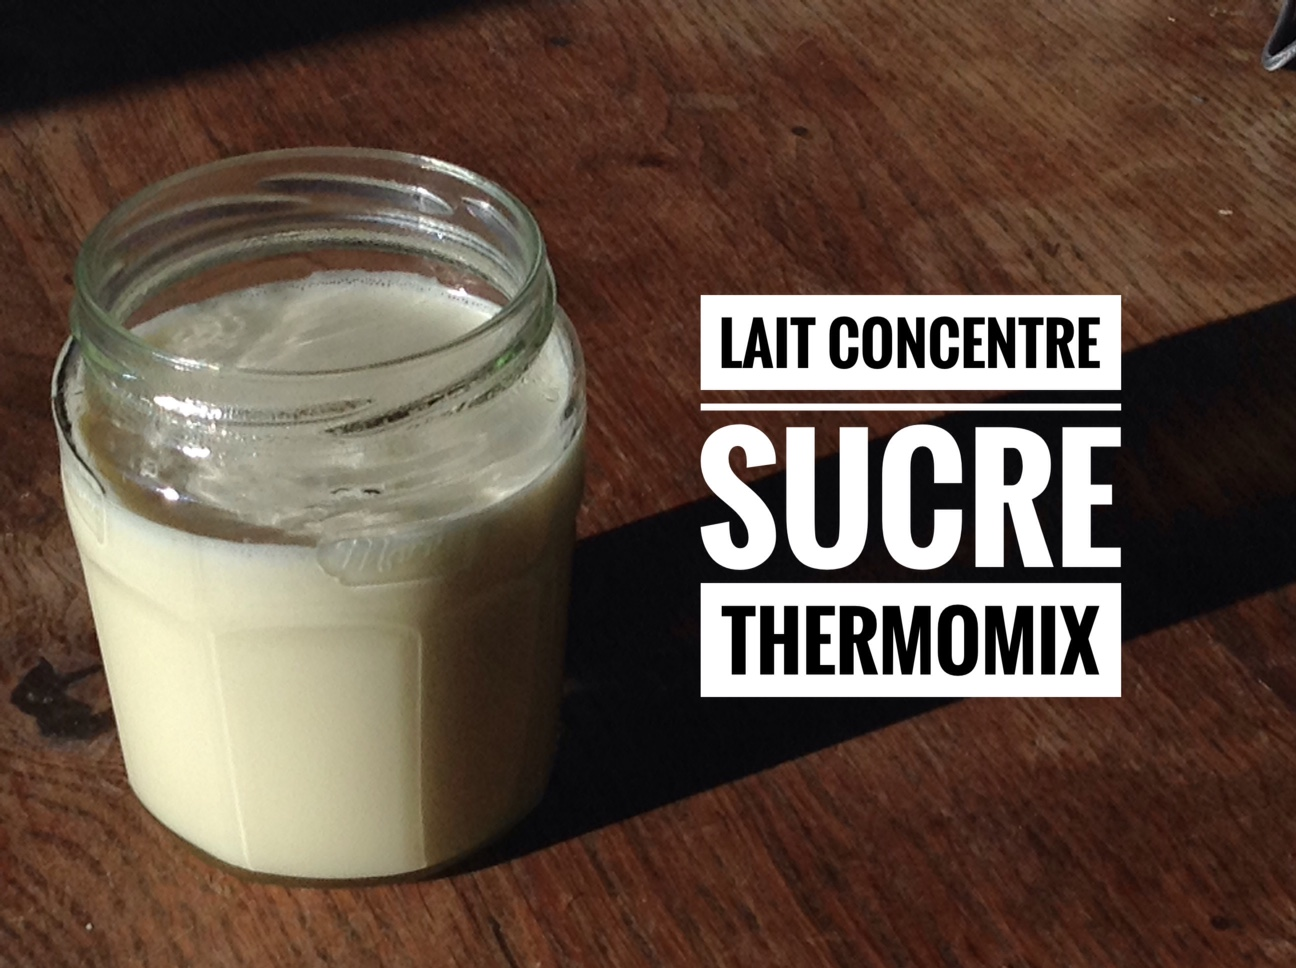 lait concentr sucr recettes de cuisine avec thermomix ou pas. Black Bedroom Furniture Sets. Home Design Ideas